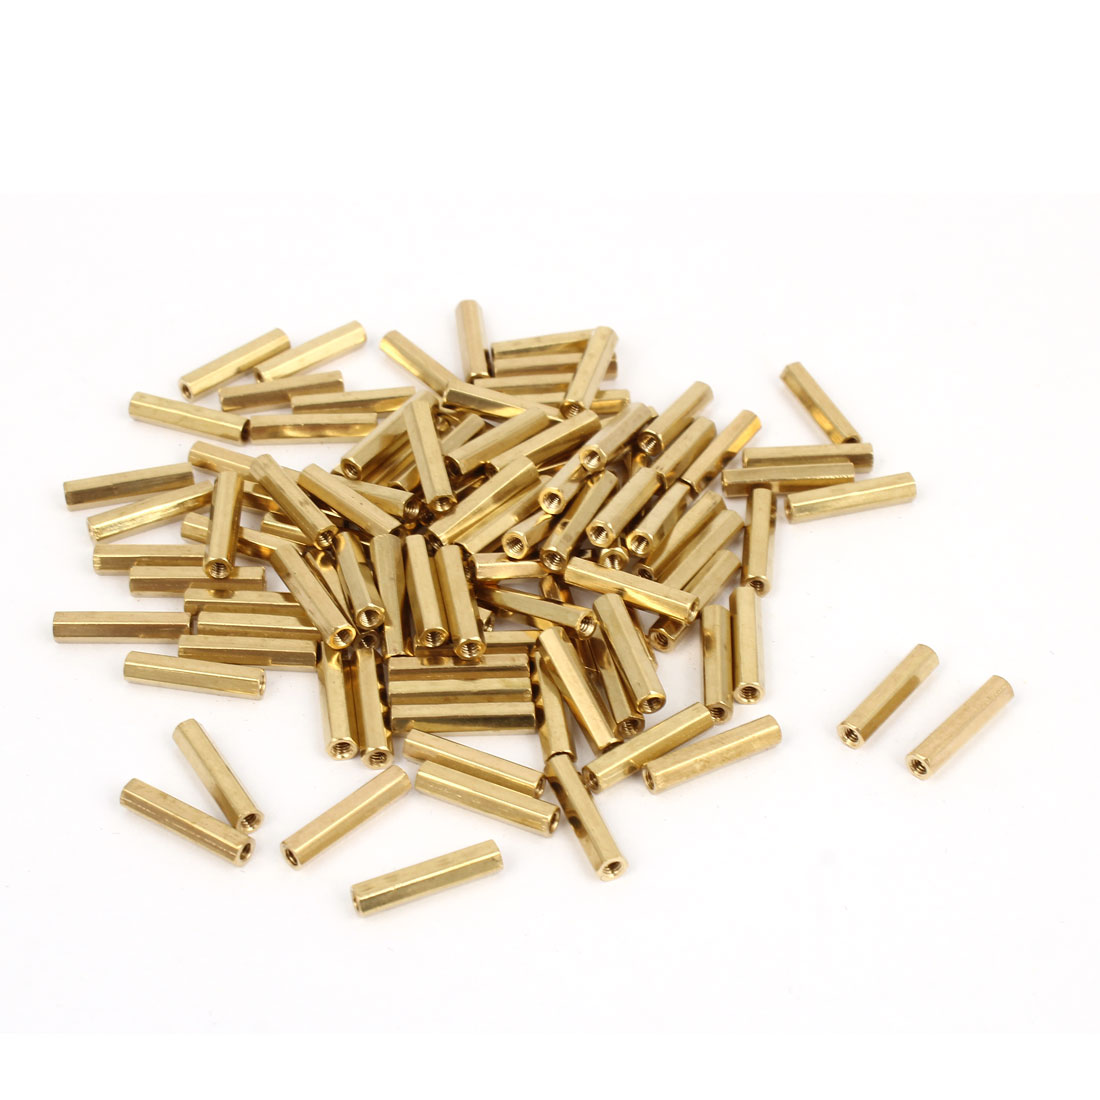 100 Pcs M2 x 14mm Gold Tone Dual Ends CCTV Camera Standoff Hexagonal Nut Spacer